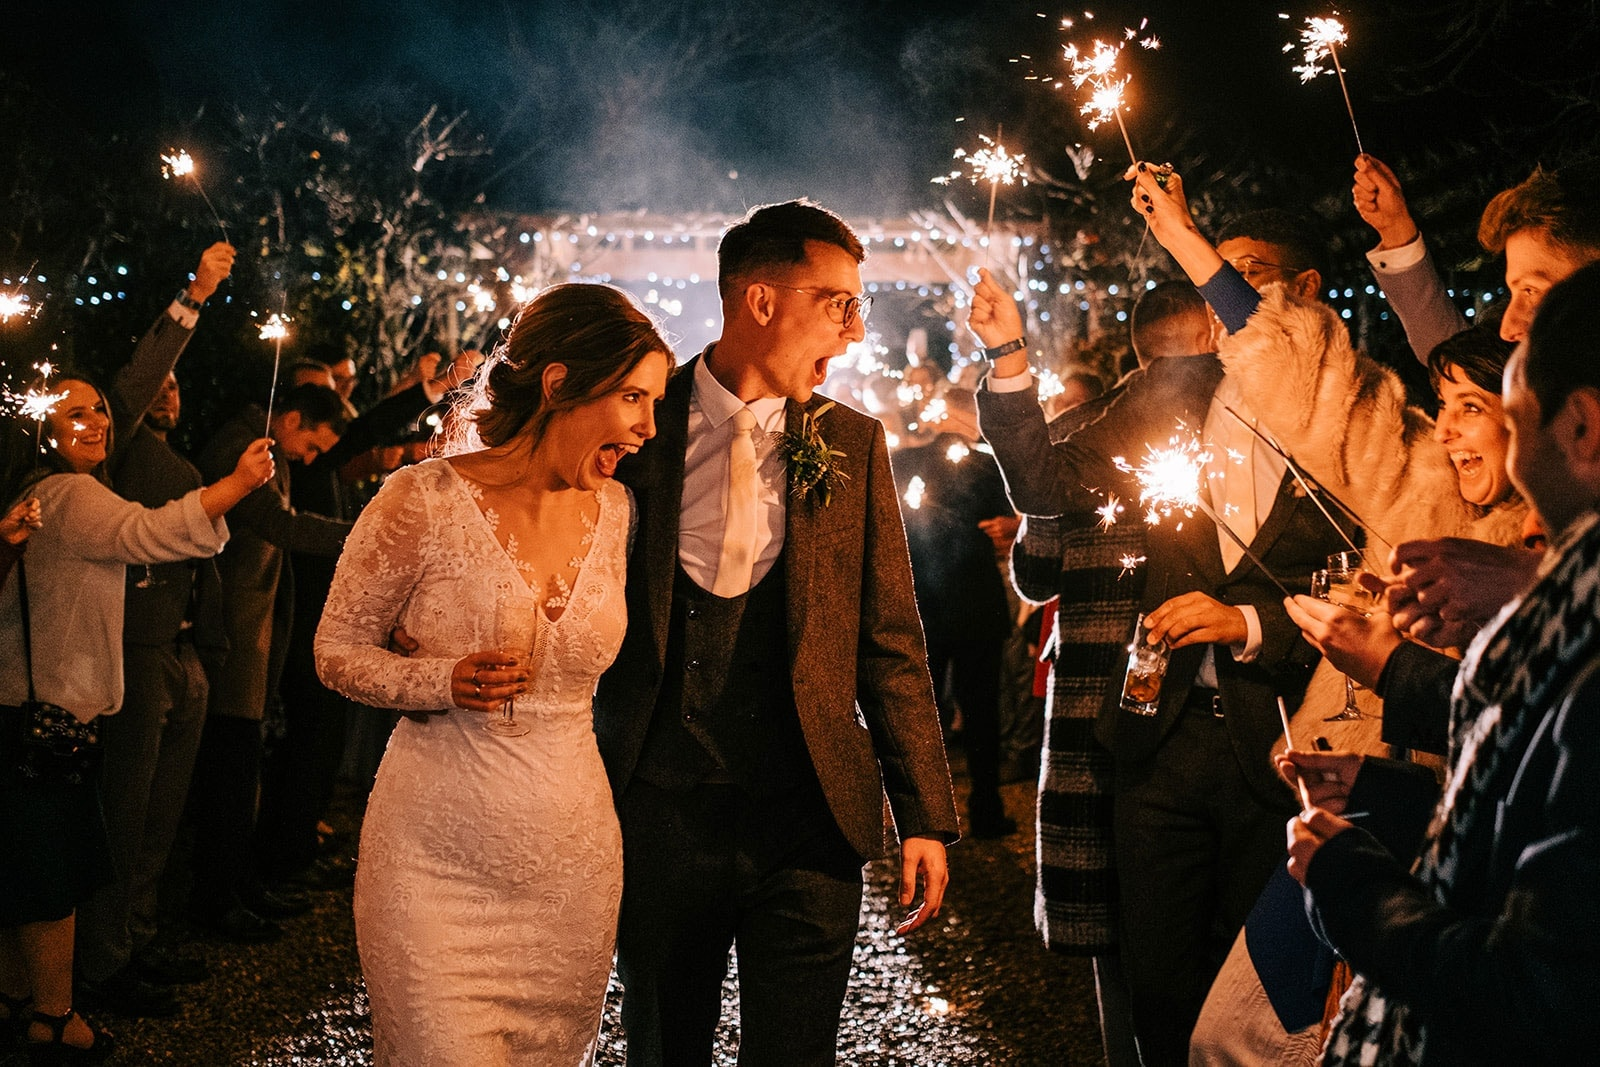 Louise and Steve make their sparkler exit